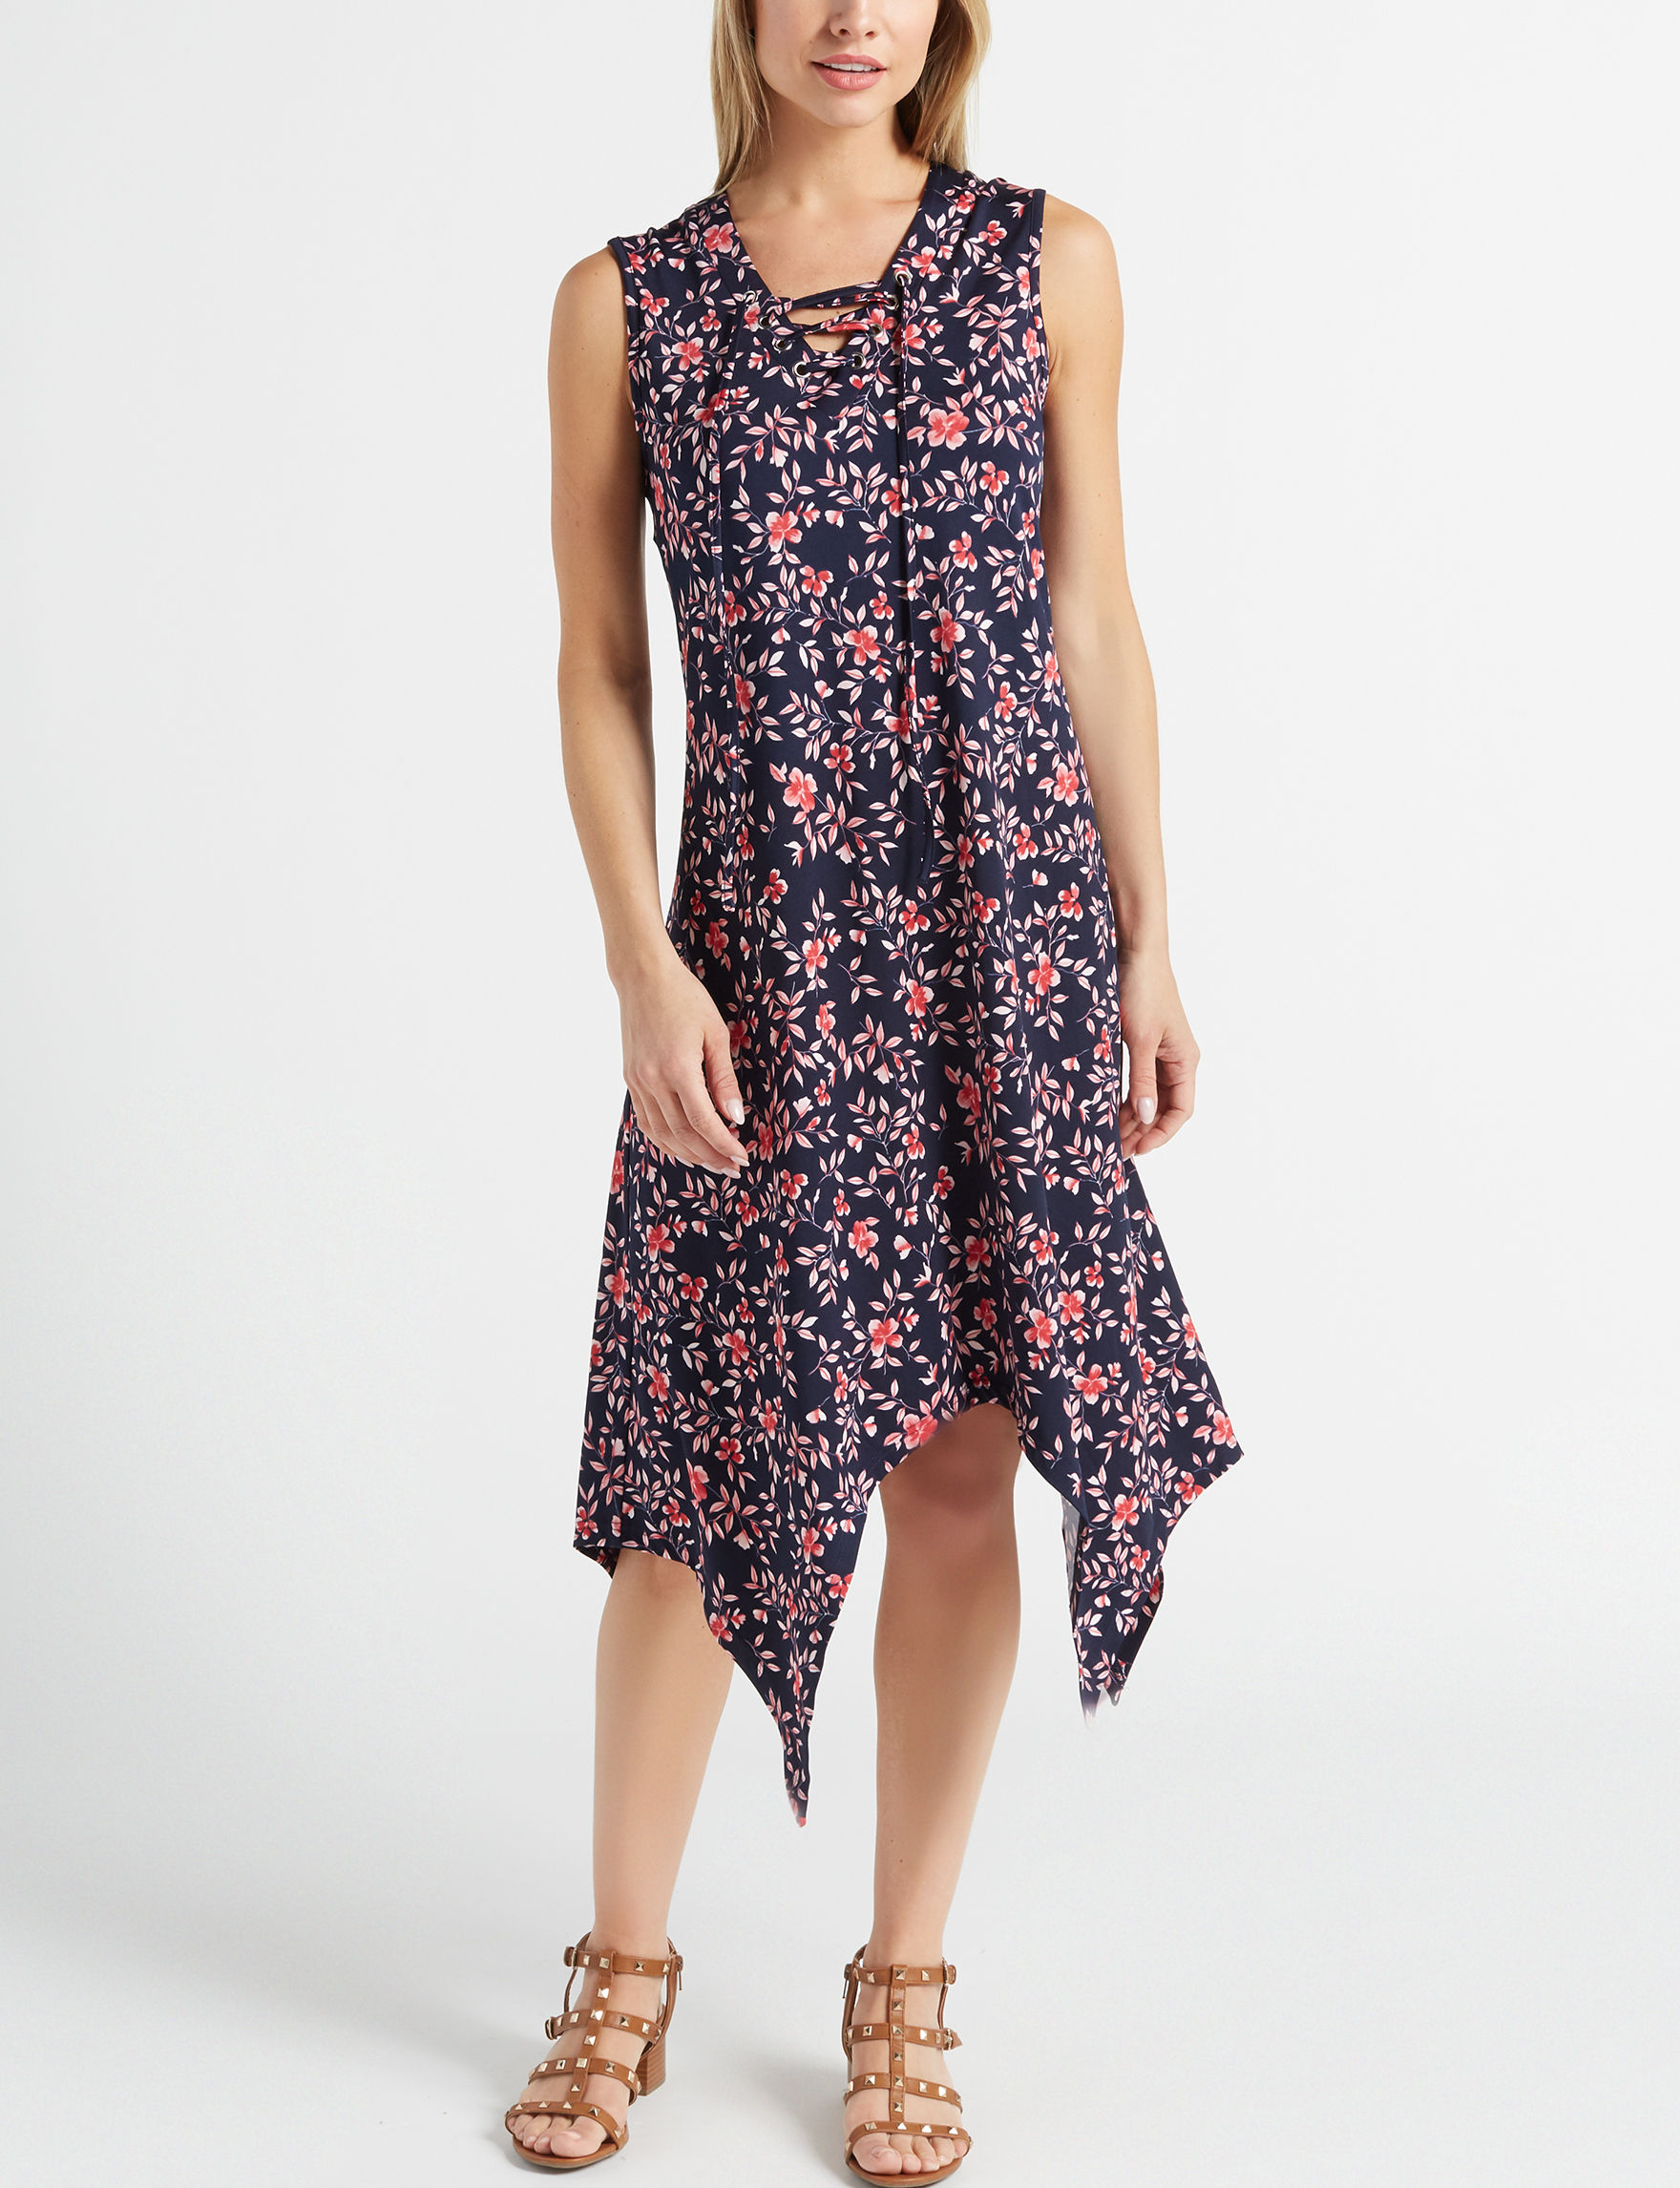 Nina Leonard Navy / Multi Everyday & Casual Shift Dresses